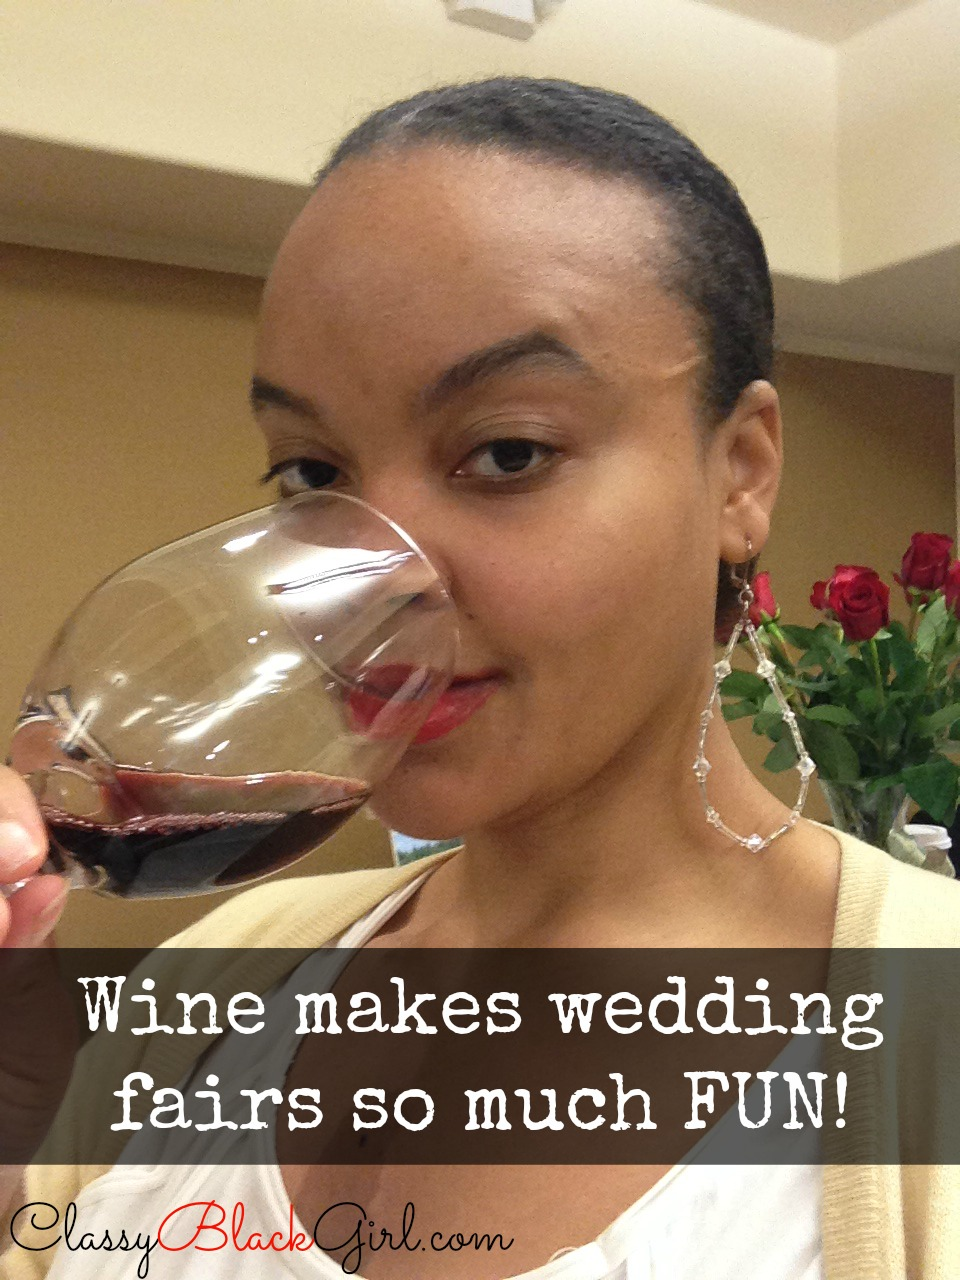 wedding fairs wine classyblackgirl.com